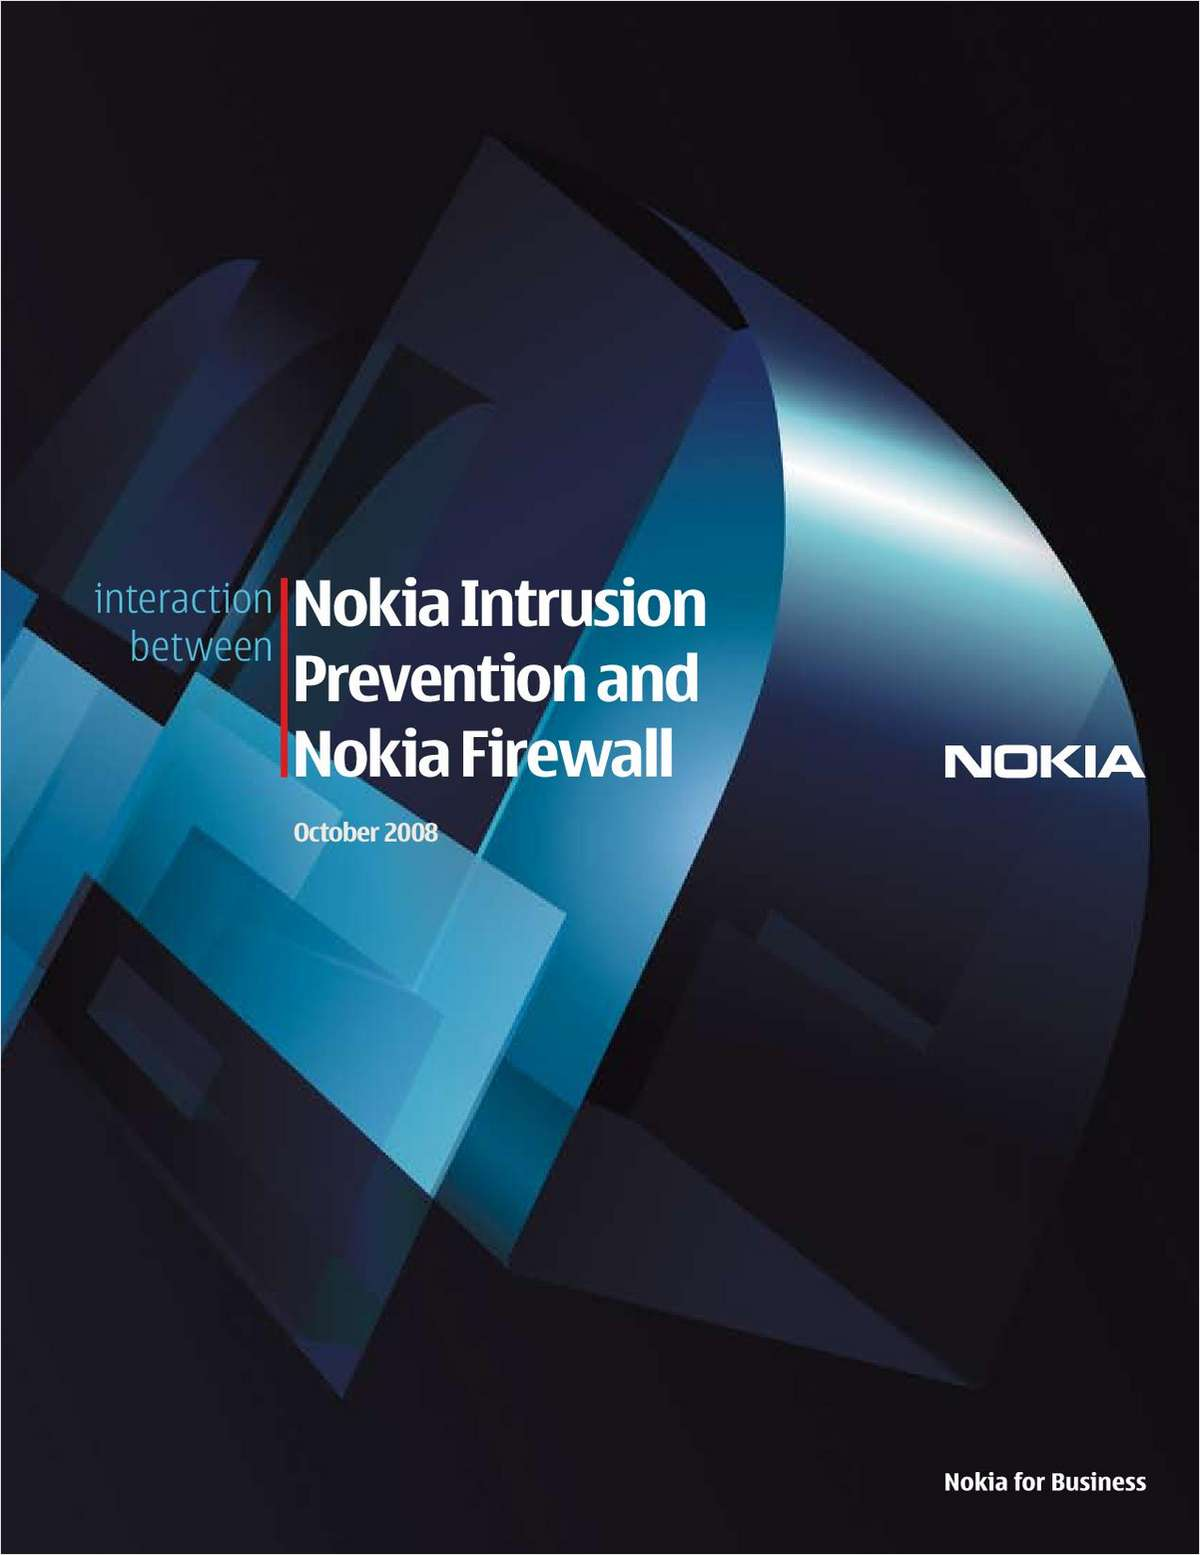 Nokia Intrusion Prevention and Nokia Firewall